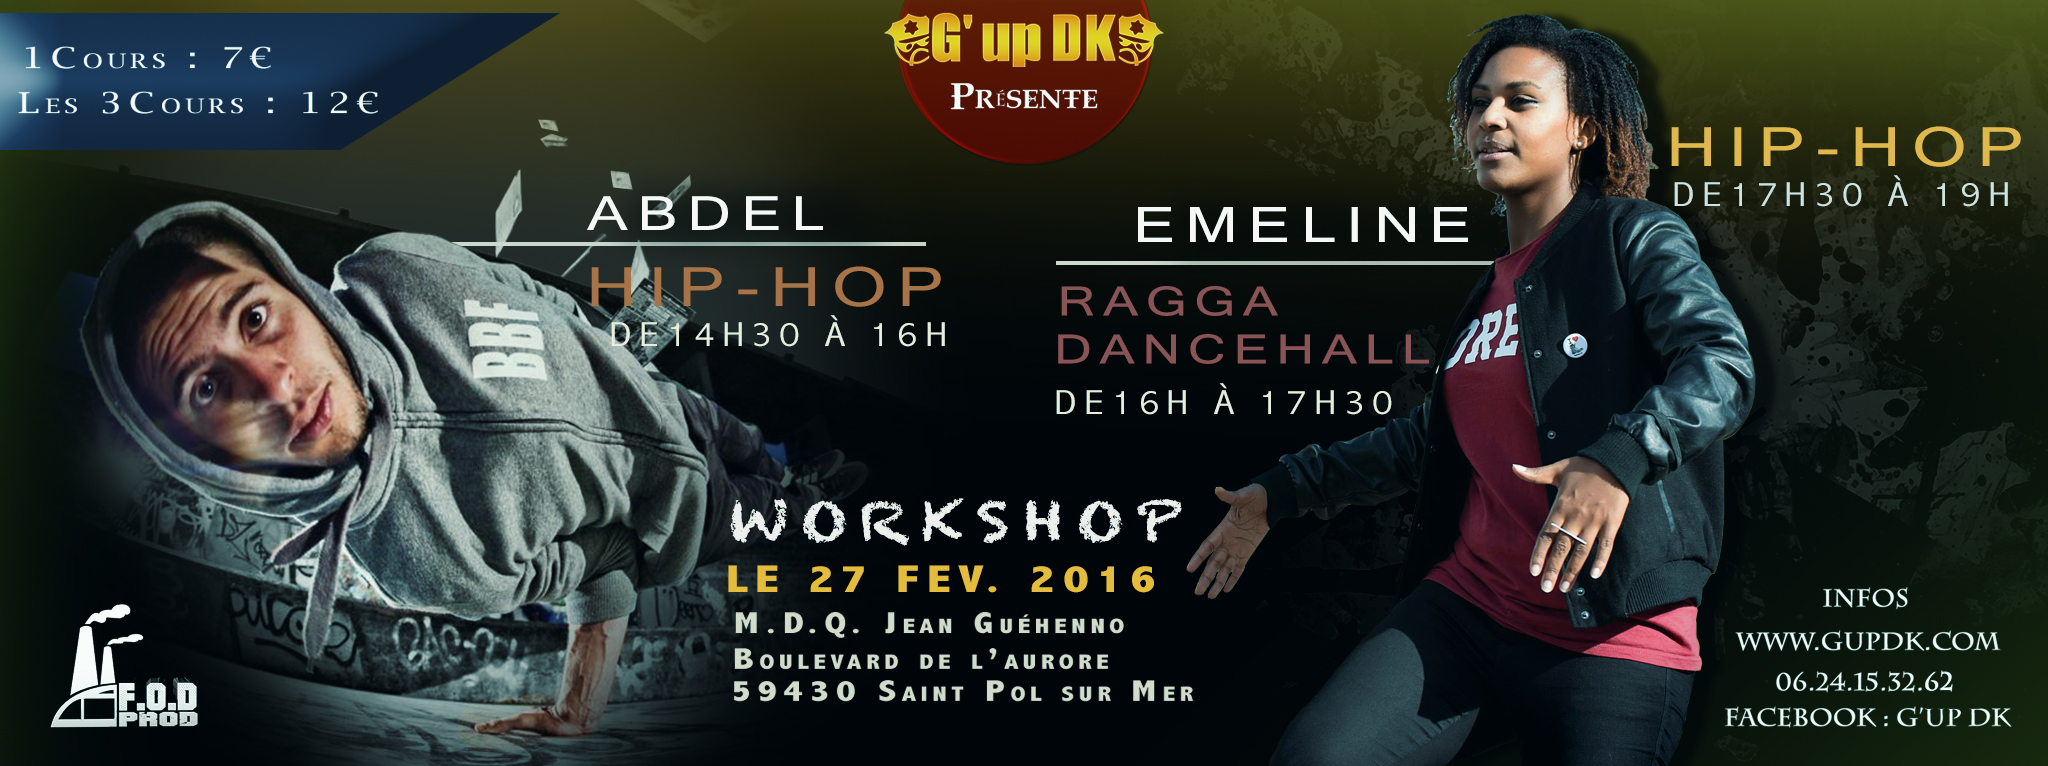 G'up Dk – Dance Hall Hip Hop 3